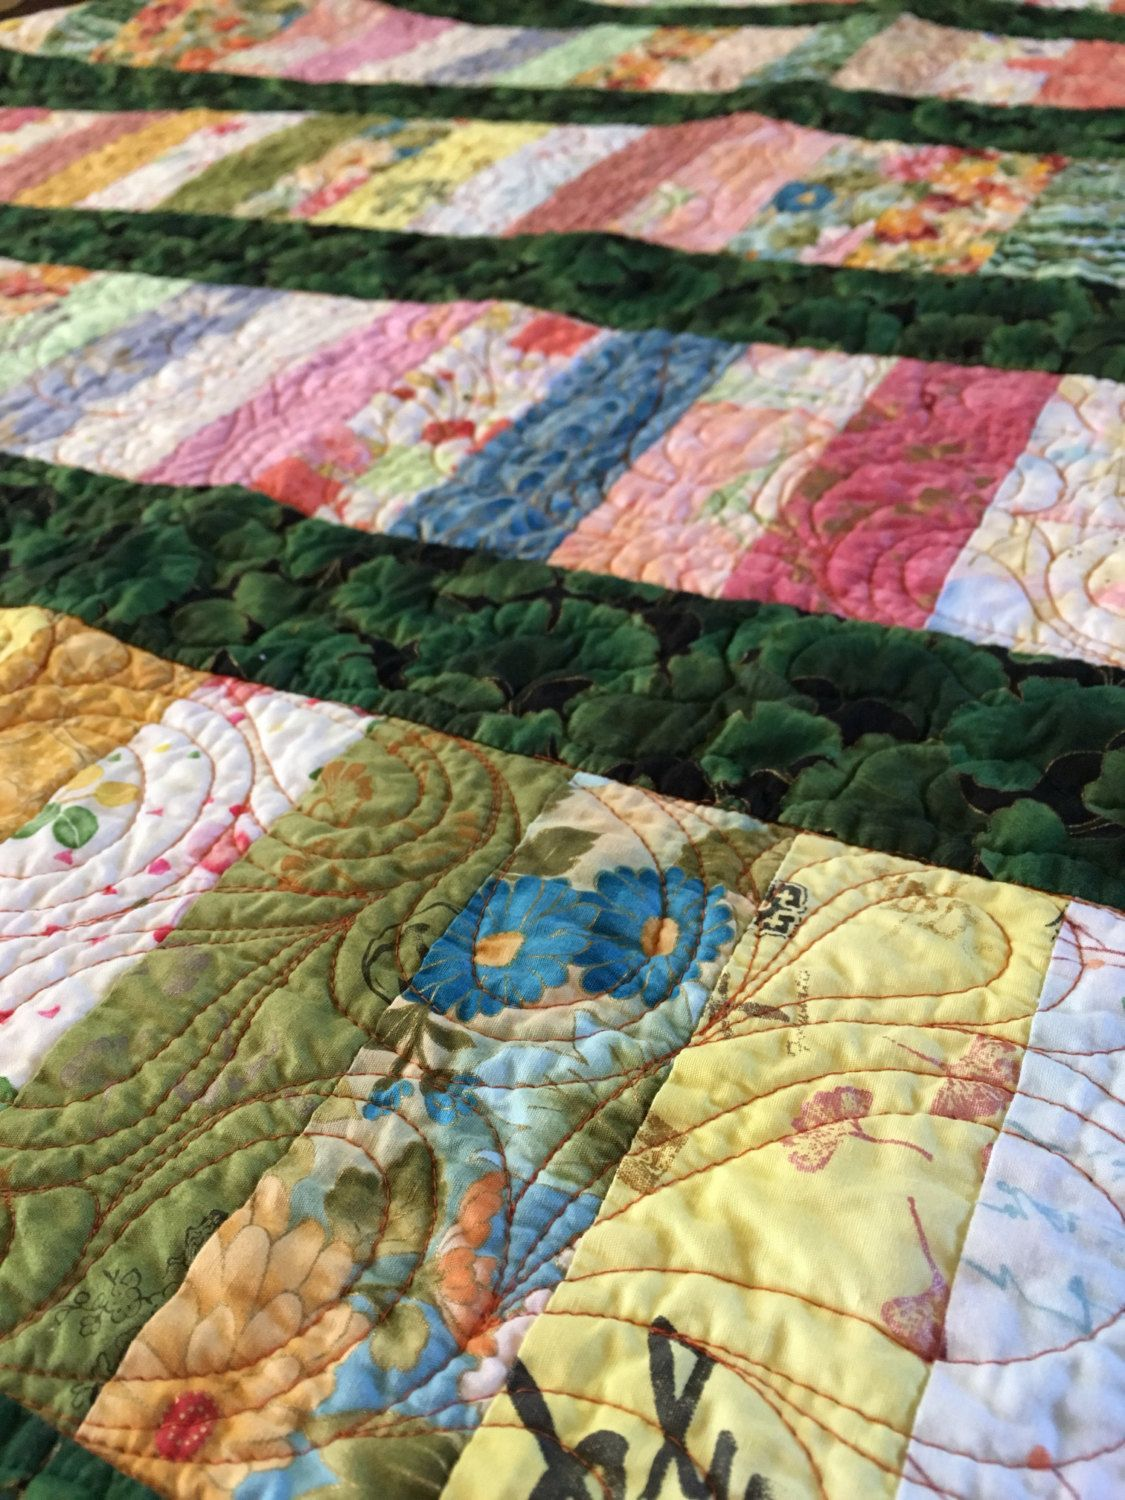 Lap Quilt - Handmade Quilt - Patchwork Quilt - Asian Decor ... : quilted lap throws - Adamdwight.com